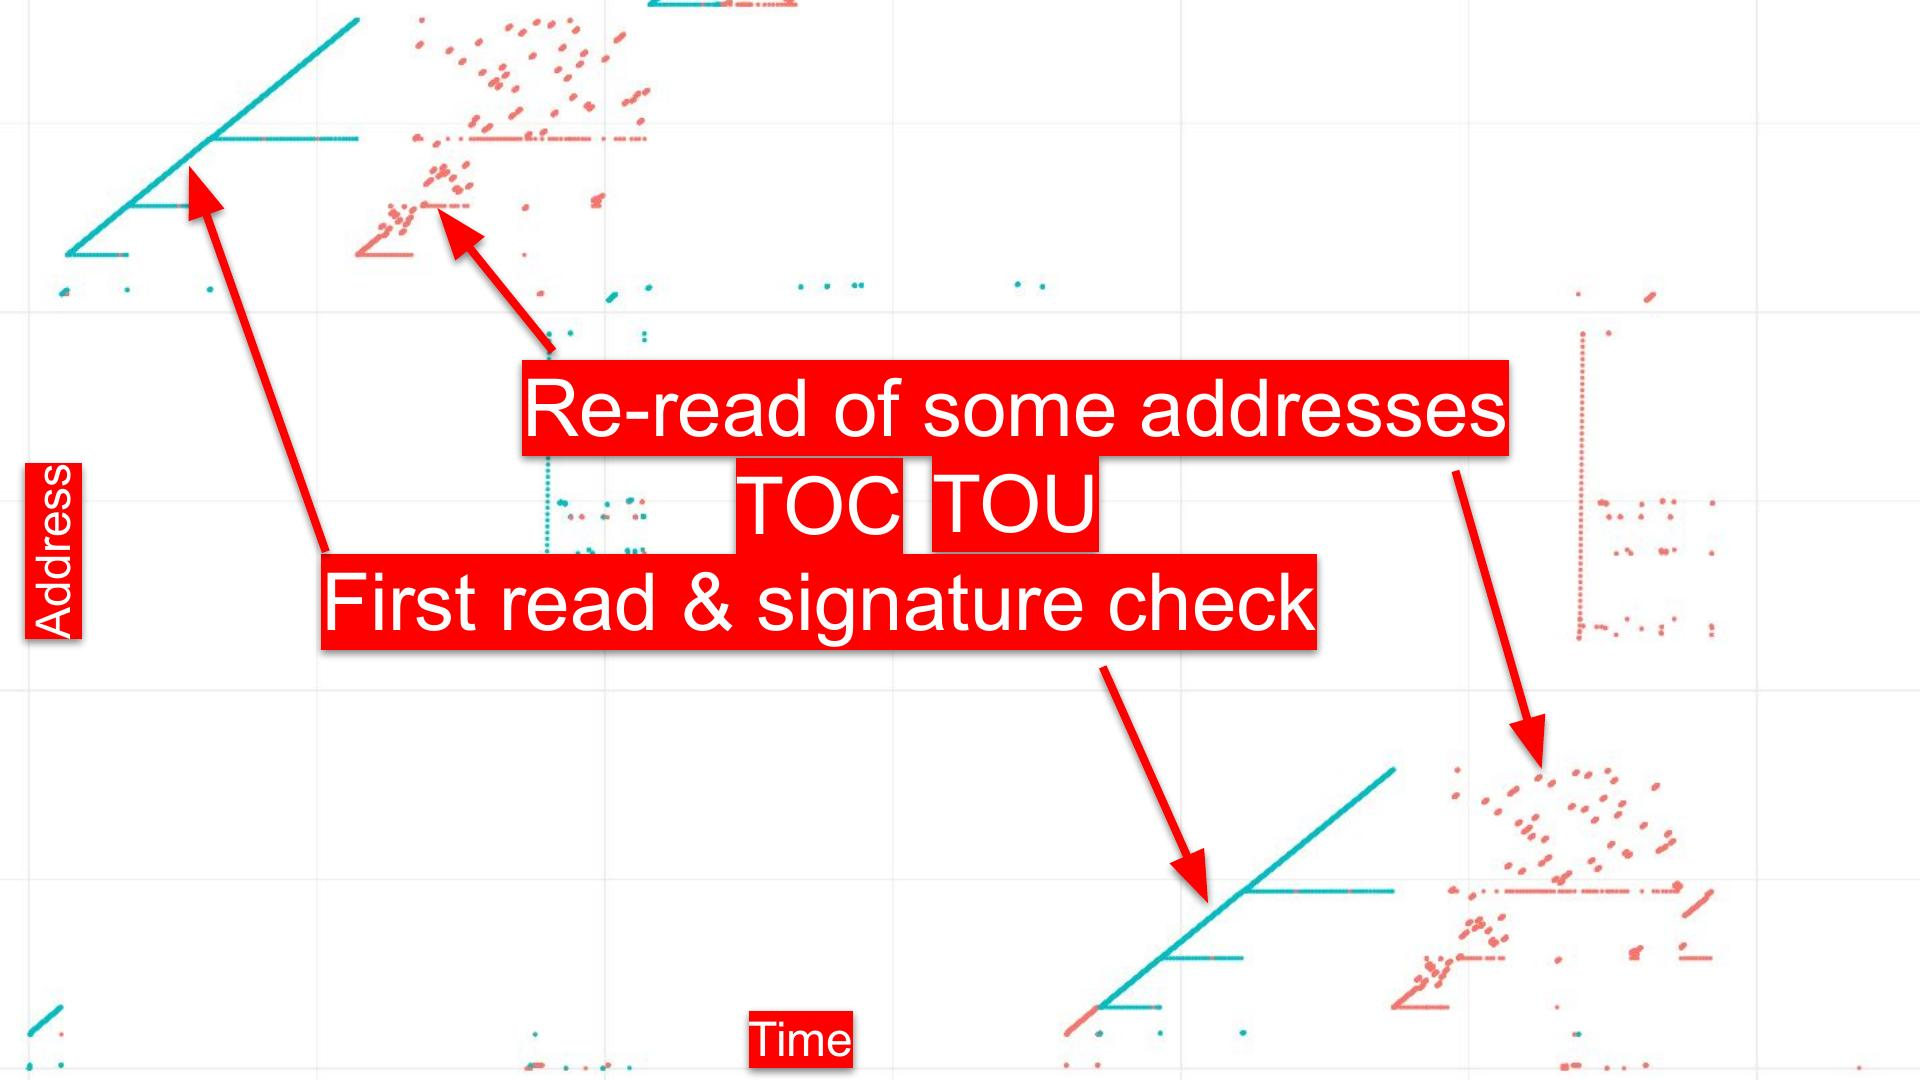 Graph of memory read addresses versus time, showing TOCTOU vulnerability